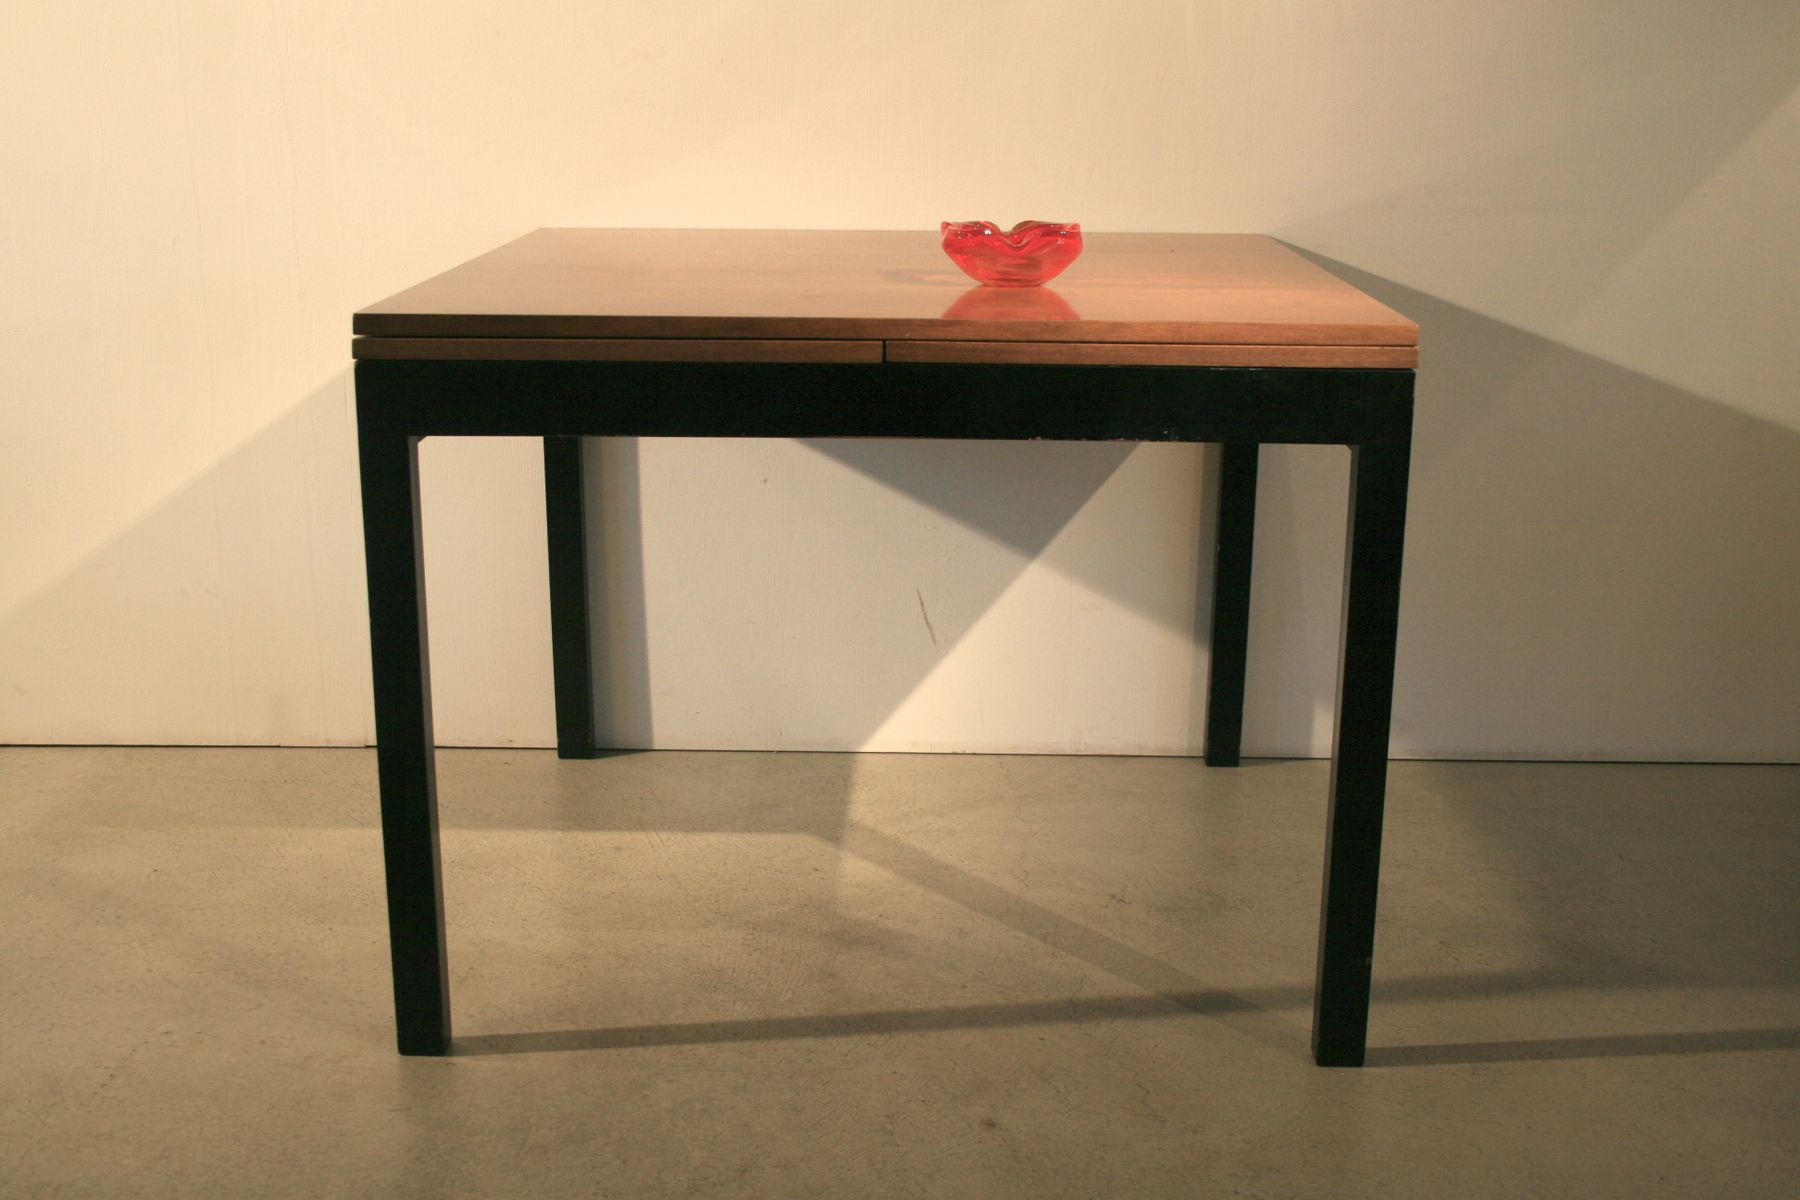 midcentury square extendable table by willy guhl for sale at pamono -